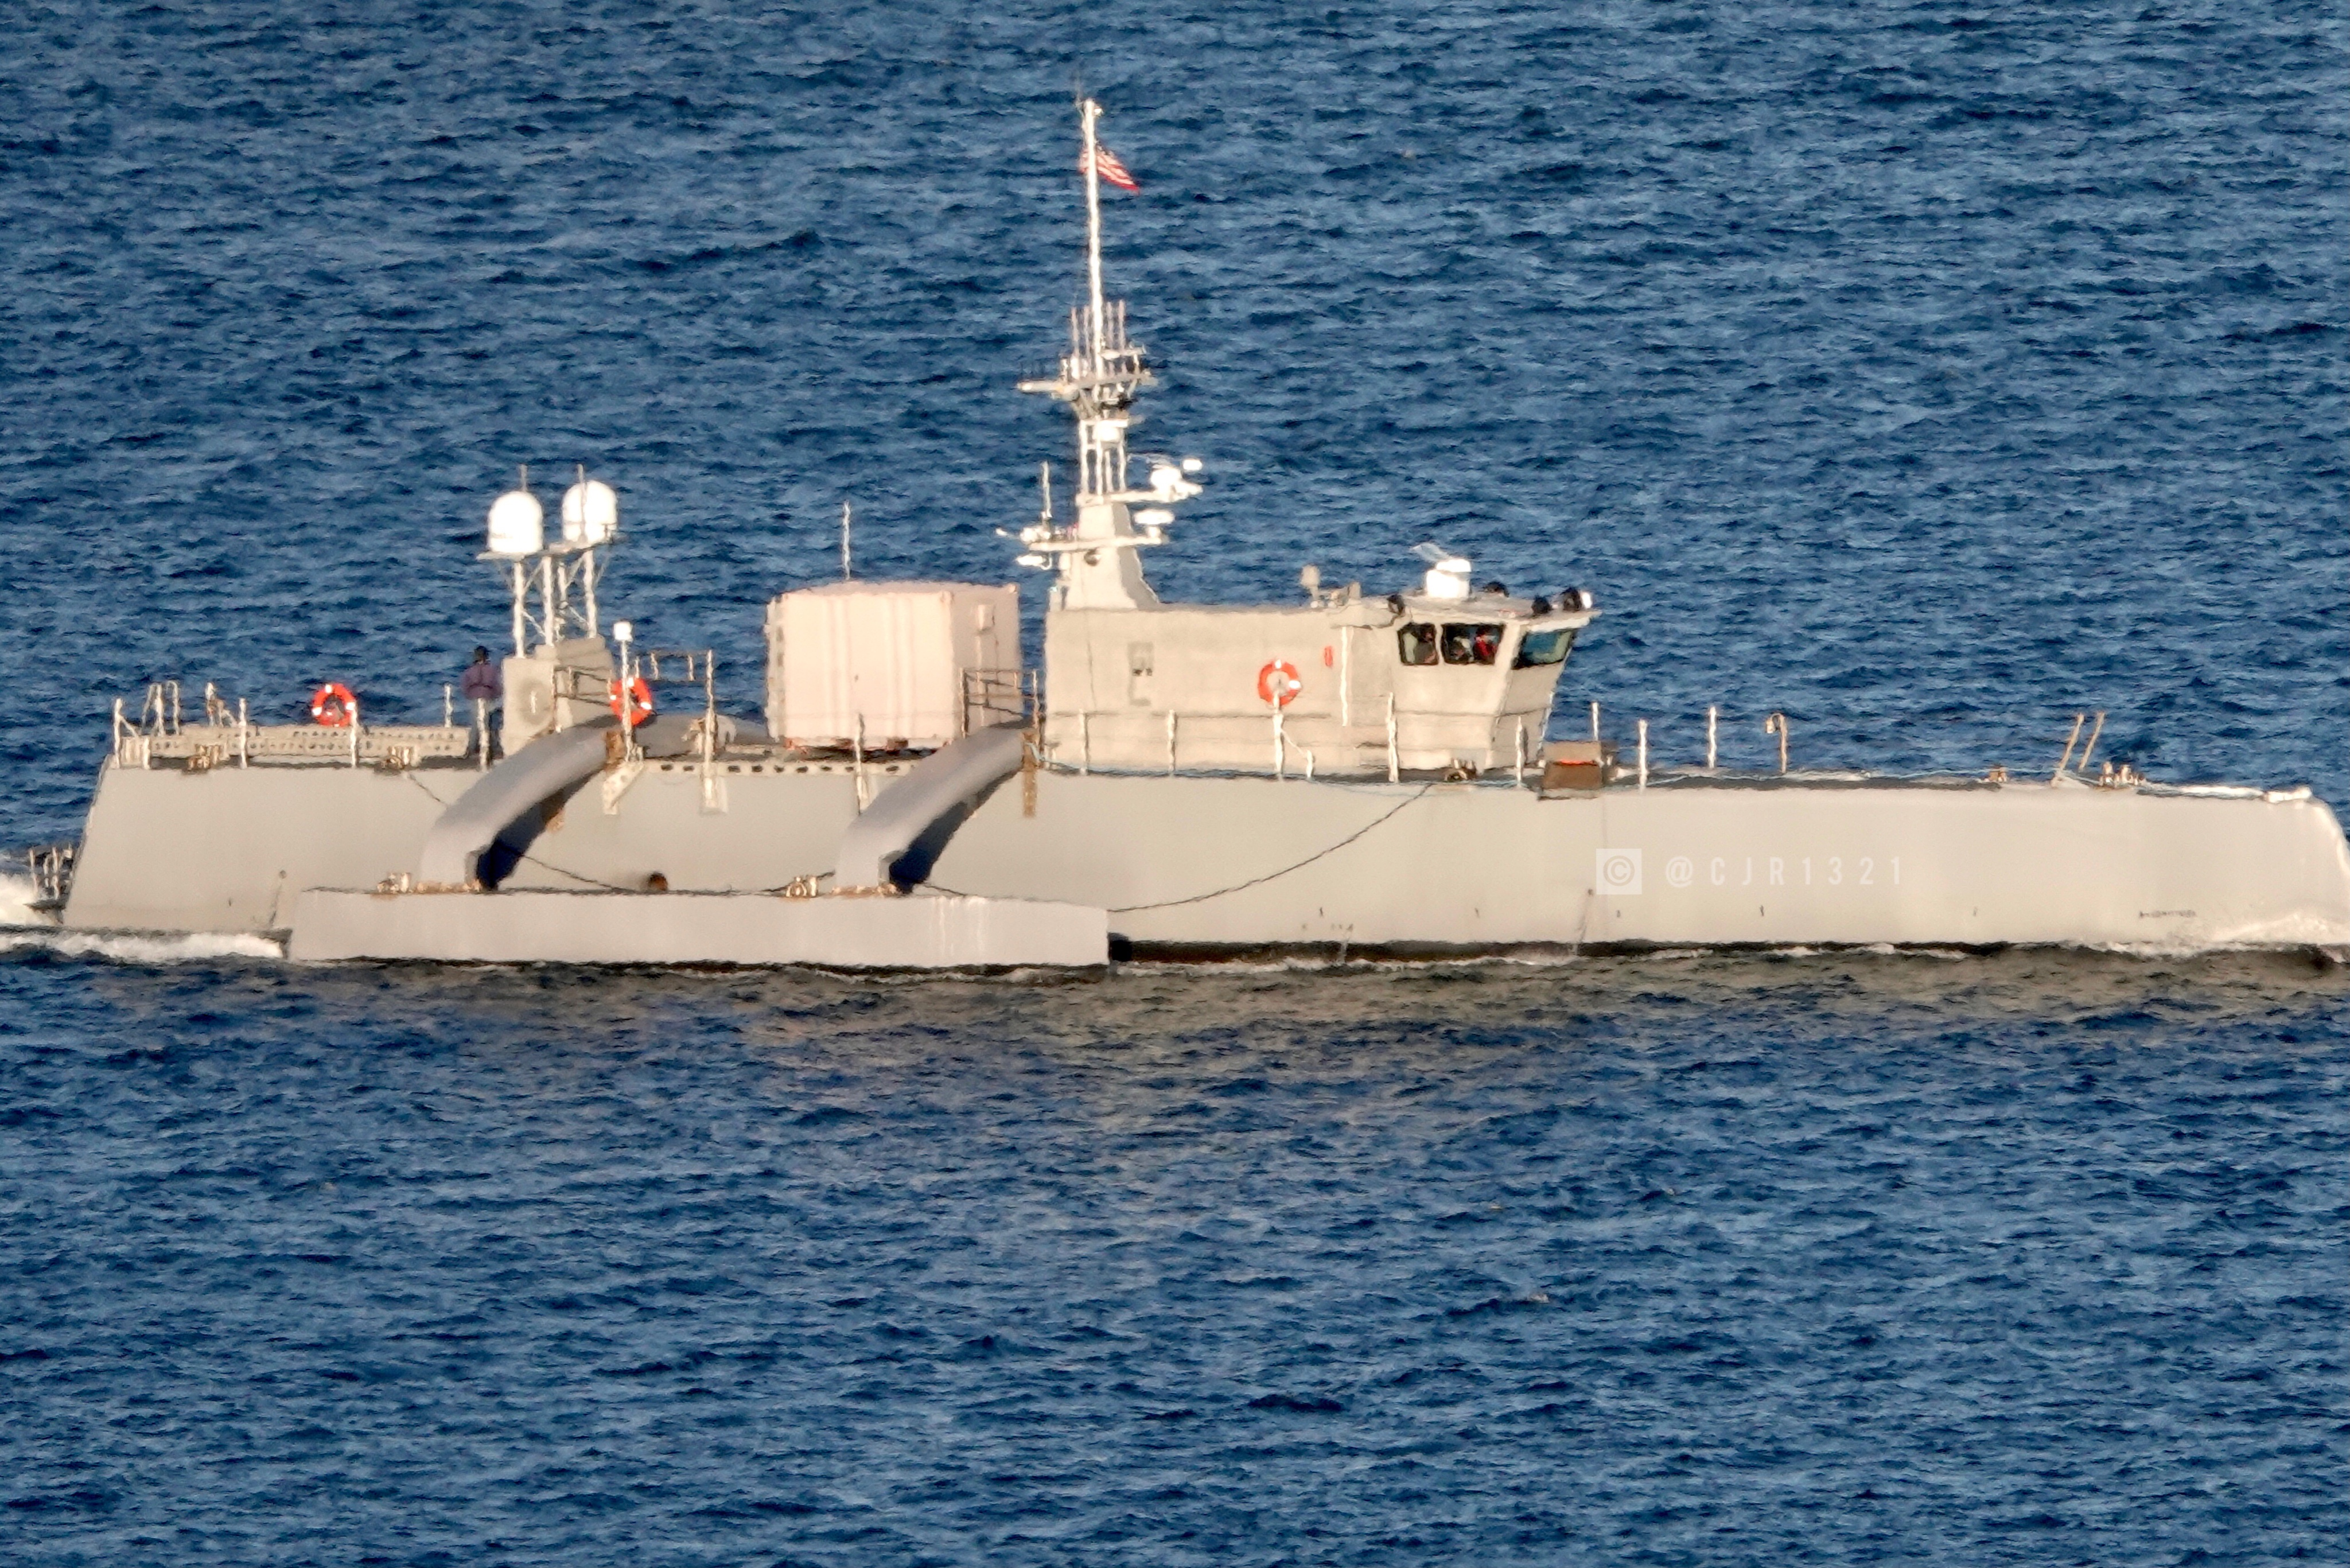 US Navy's drone ship